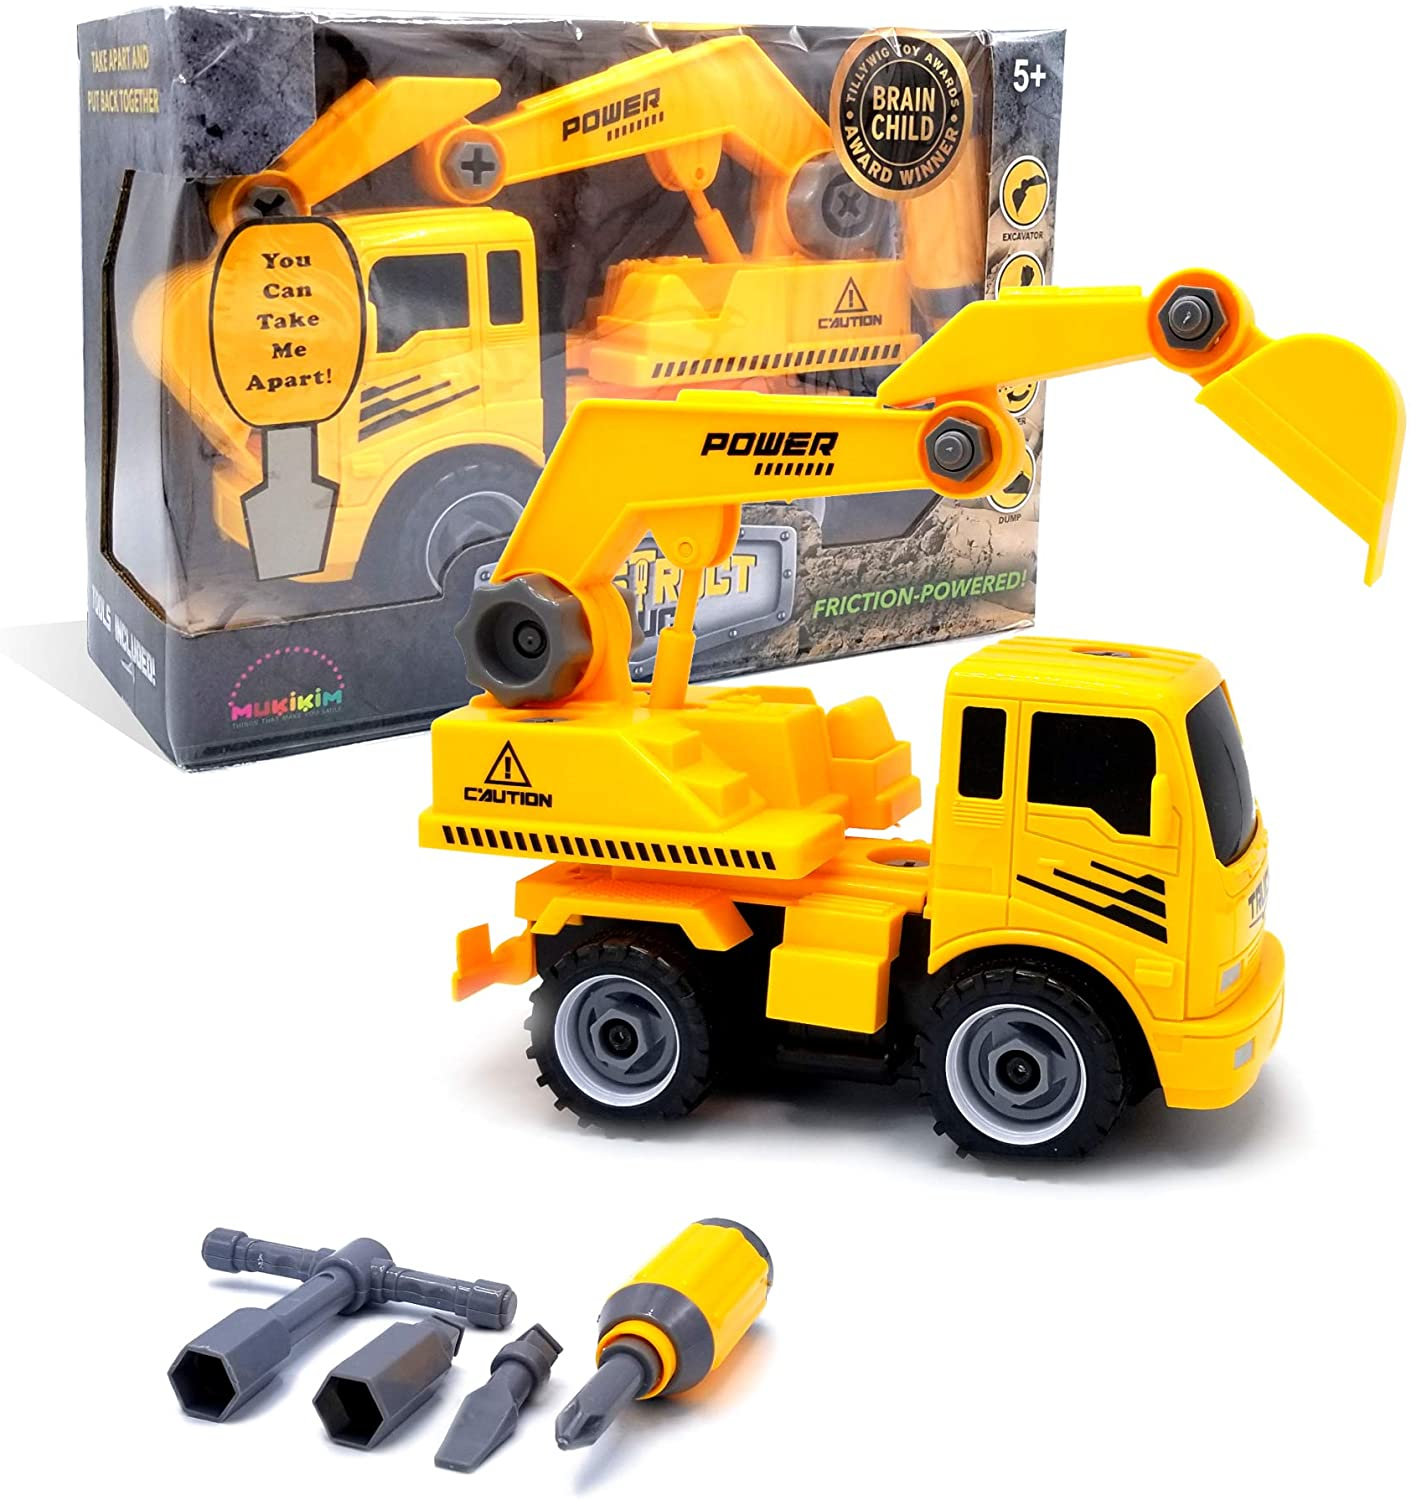 MukikiM Construct A Truck - Excavator. Take it apart & put it back together + Friction powered(2-toys-in-1!) Awesome award winning toy that encourages creativity! …